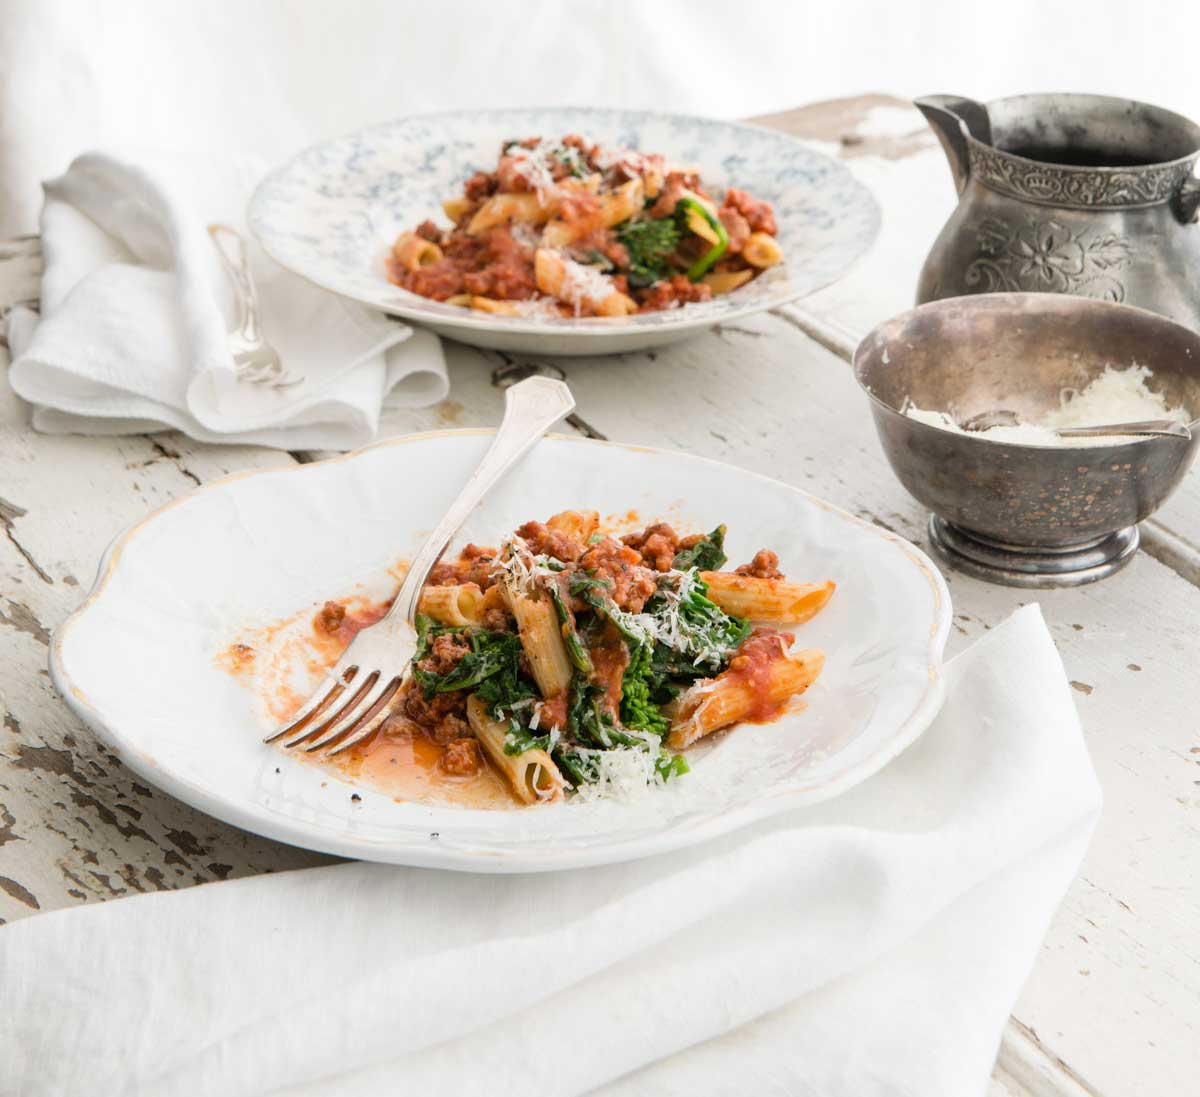 Curtis Stone's Penne with Sausage and Broccoli Rabe